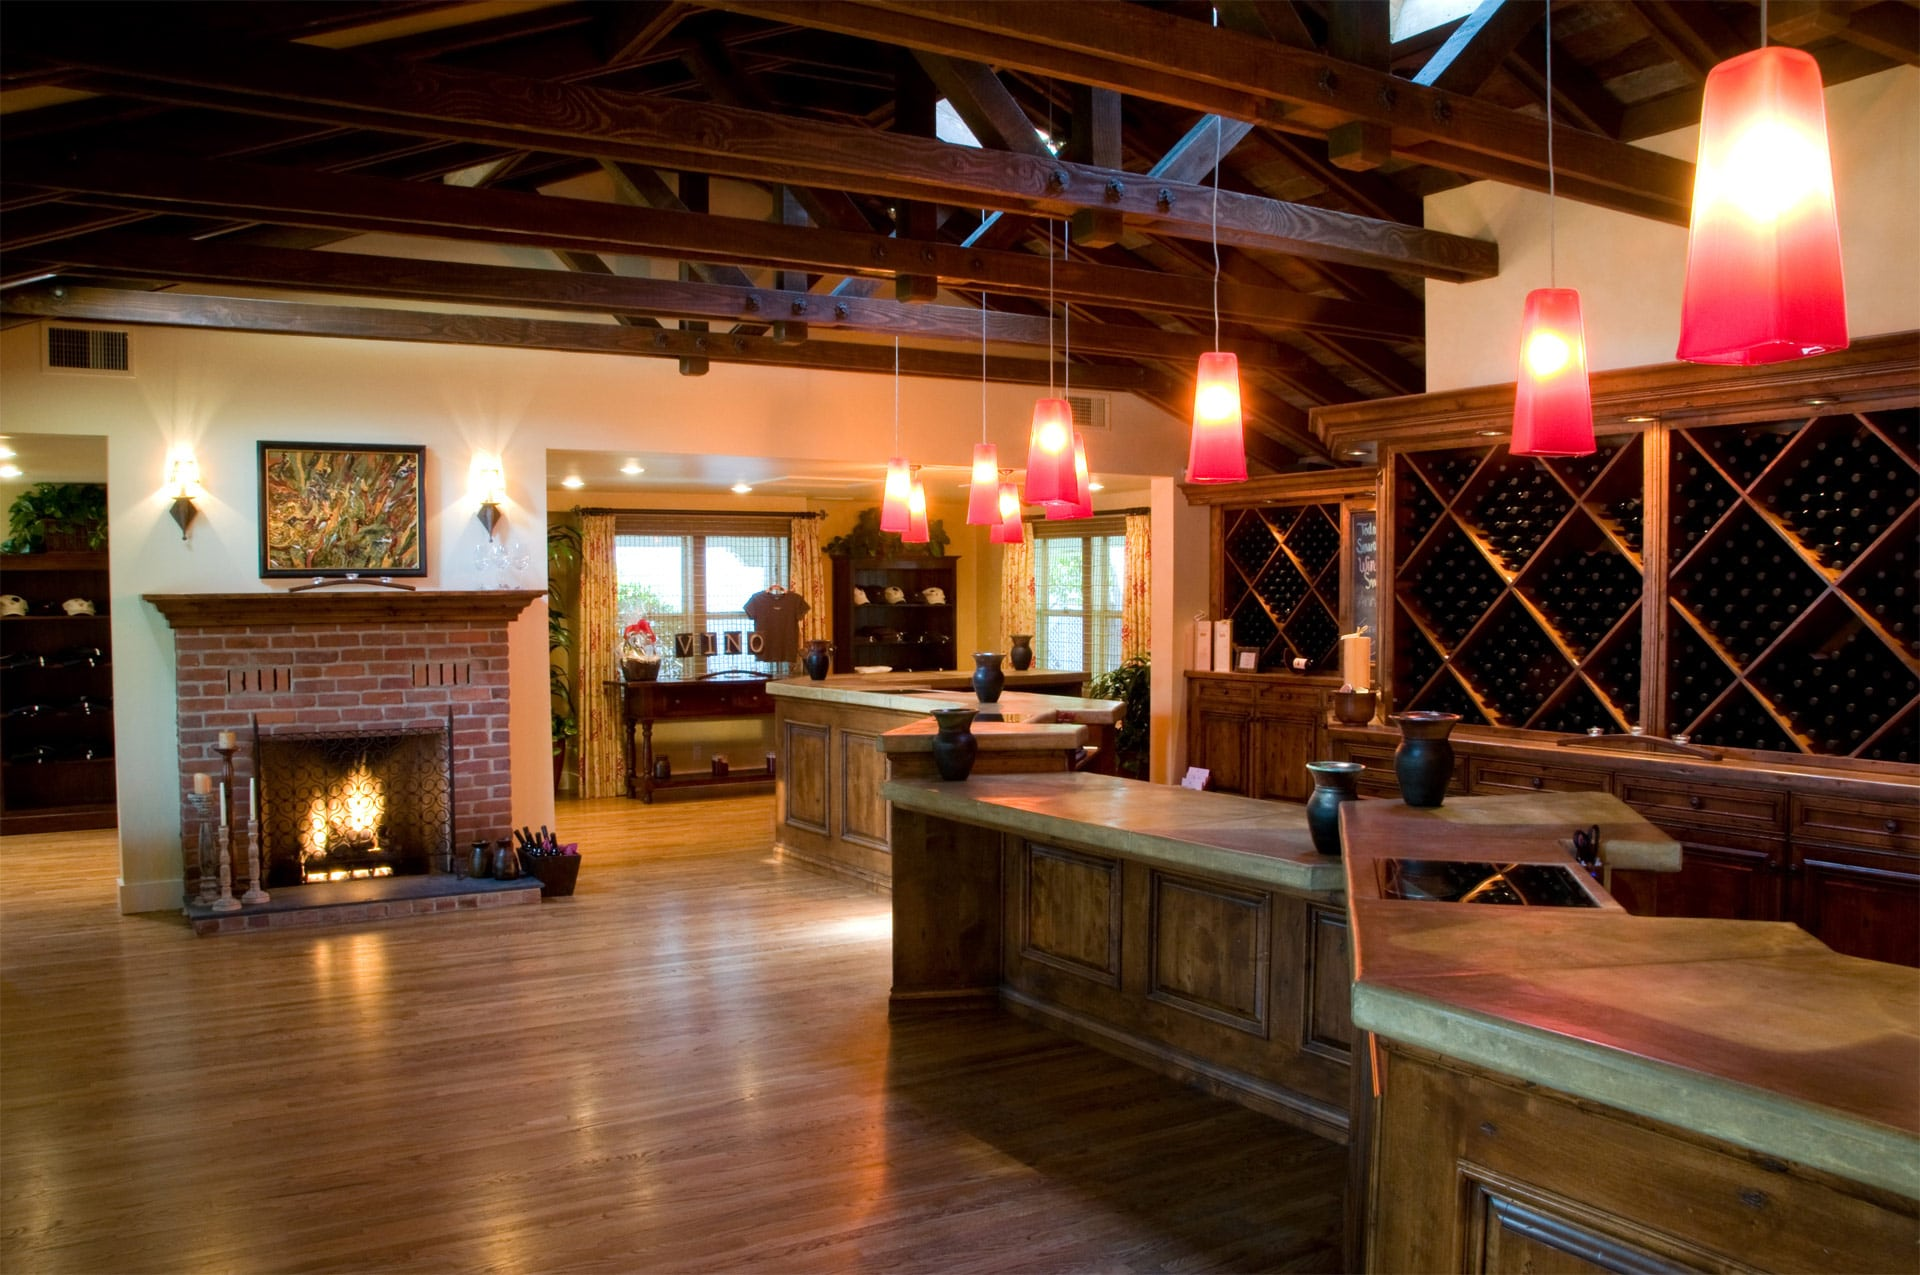 Wine Cellar Lighting Options in California